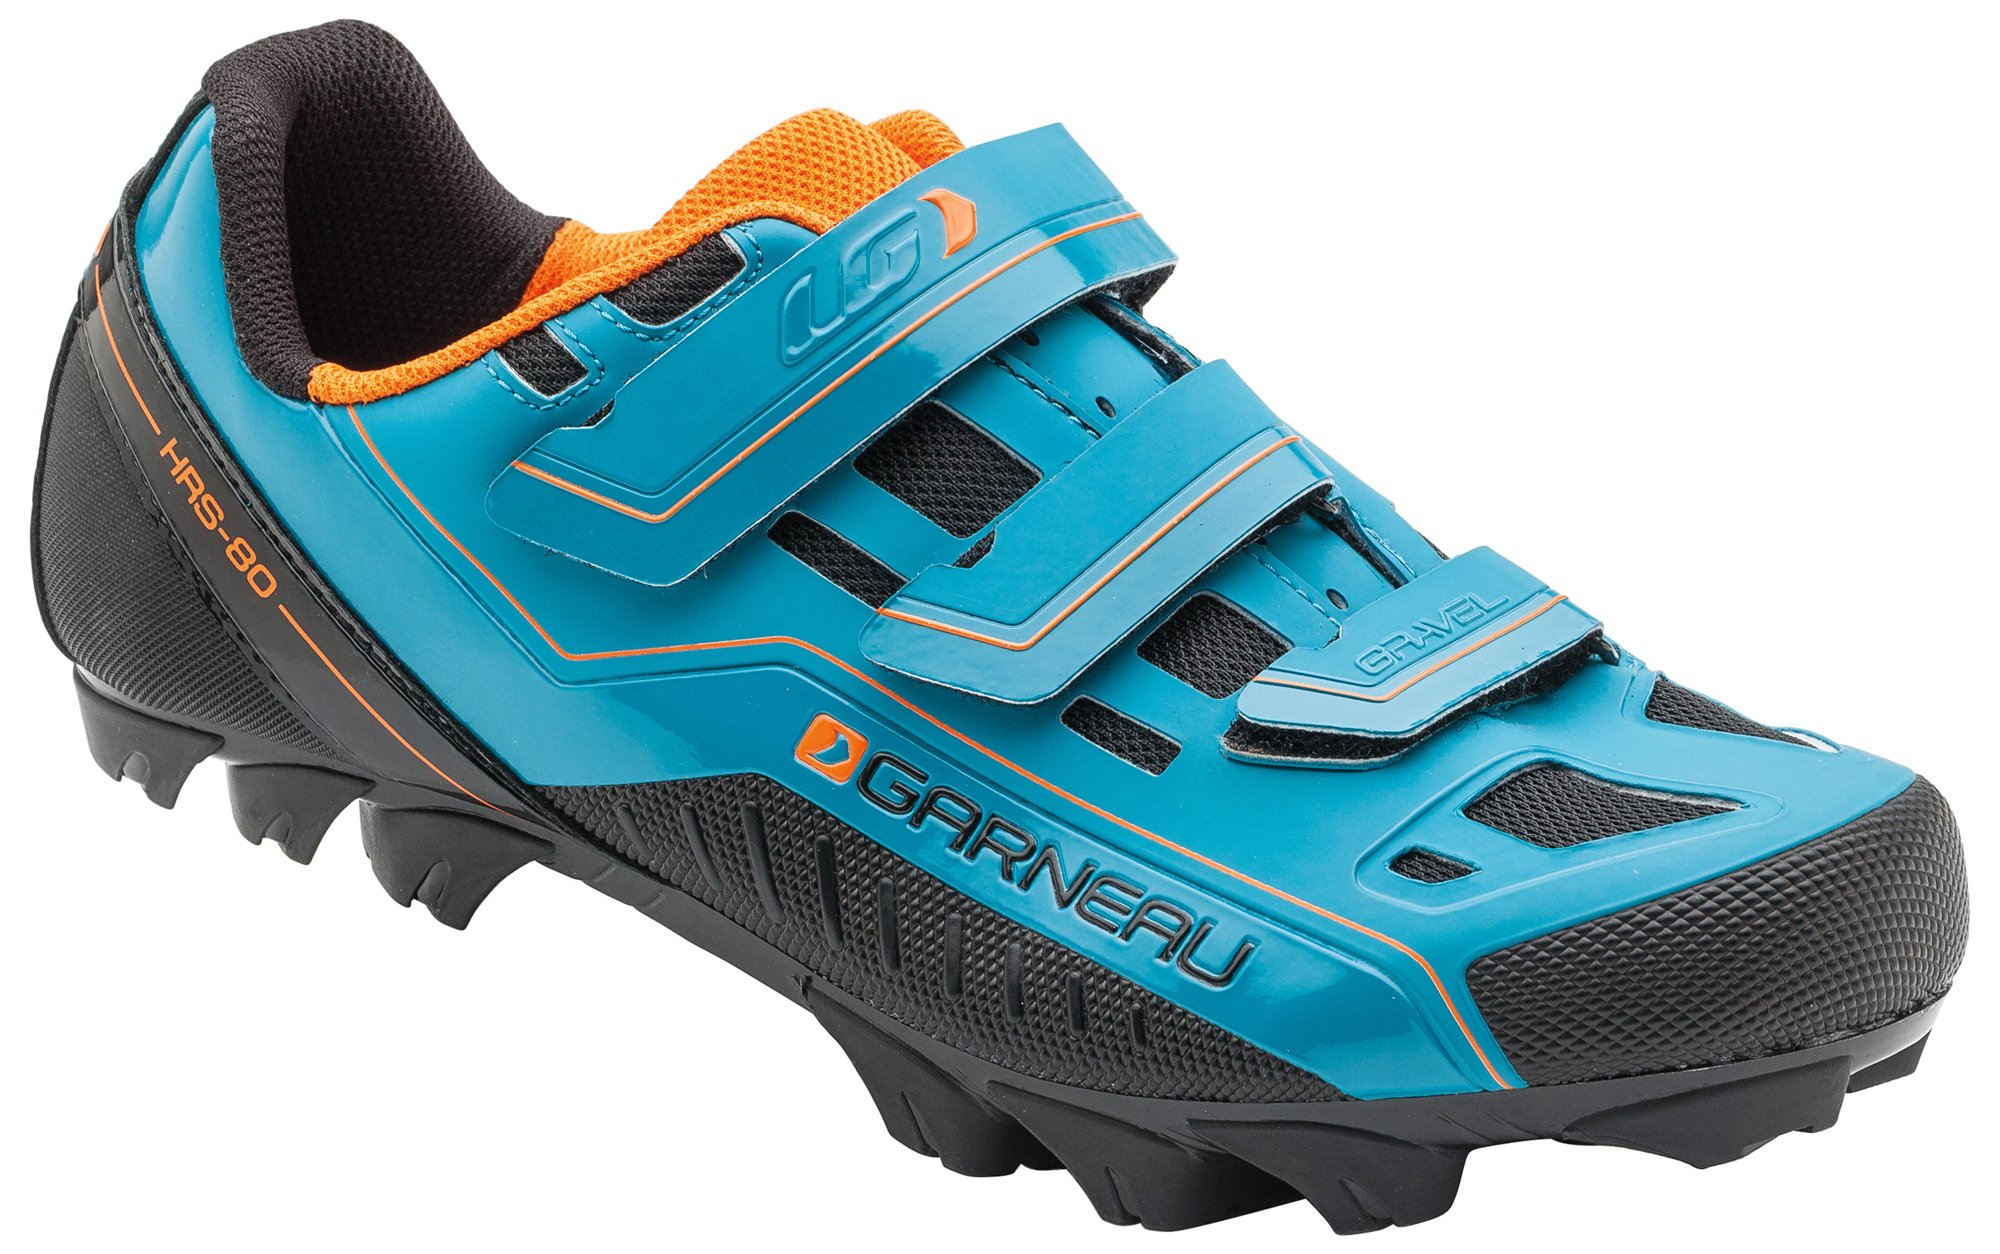 Louis Garneau - Gravel Bike Shoes, Sapphire, US (13), EU (49)